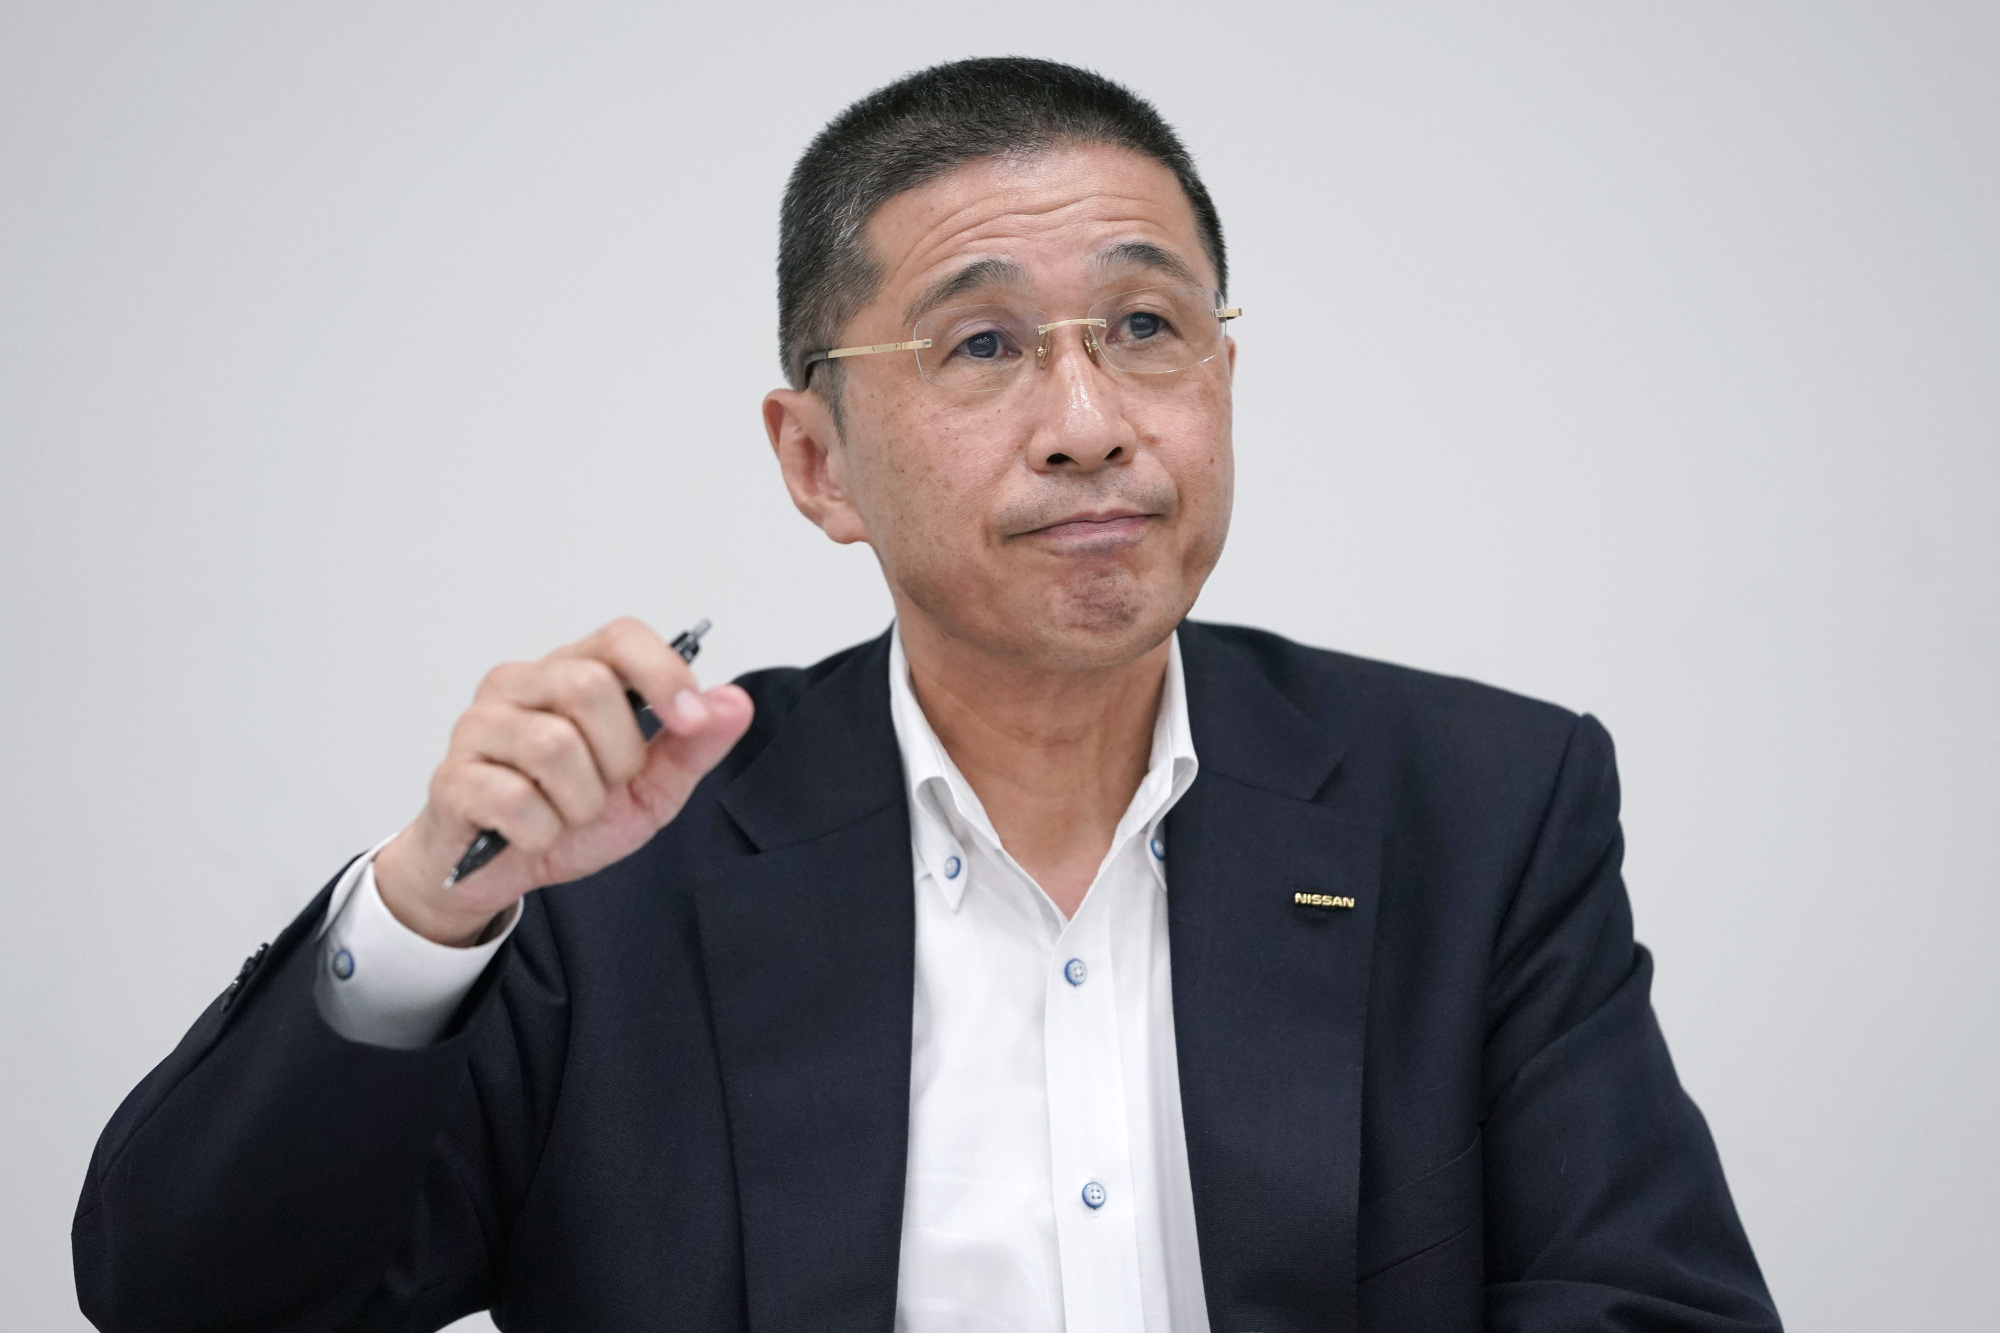 Hiroto Saikawa, chief executive officer of Nissan Motor Co., speaks during a news conference at the company's headquarters in Yokohama on Sept. 9. Saikawa stepped down Monday. He'll be replaced by Chief Operating Officer Yasuhiro Yamauchi until a permanent replacement is named by the end of October.   BLOOMBERG